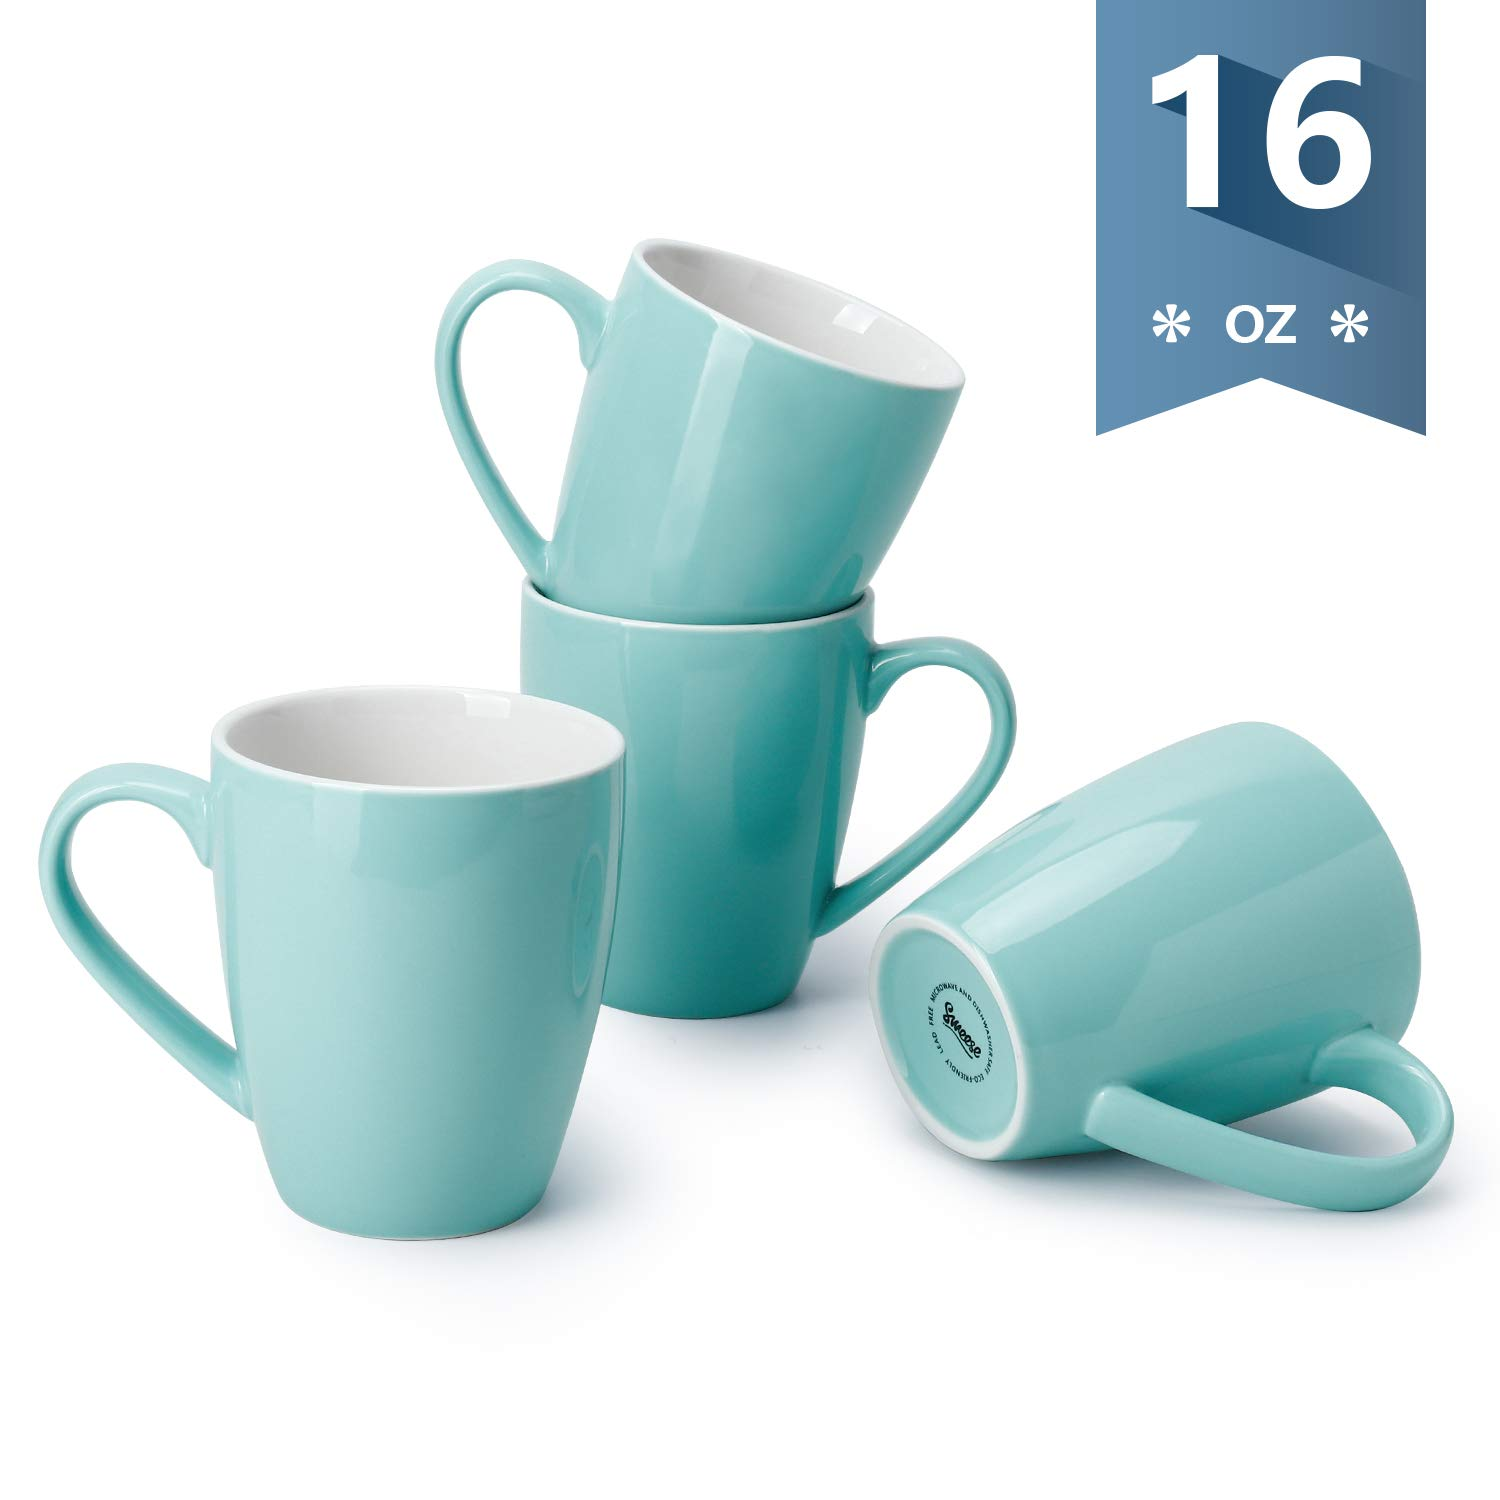 Sweese 601.102 Porcelain Mugs - 16 Ounce (Top to the Rim) for Coffee, Tea, Cocoa, Set of 4, Turquoise